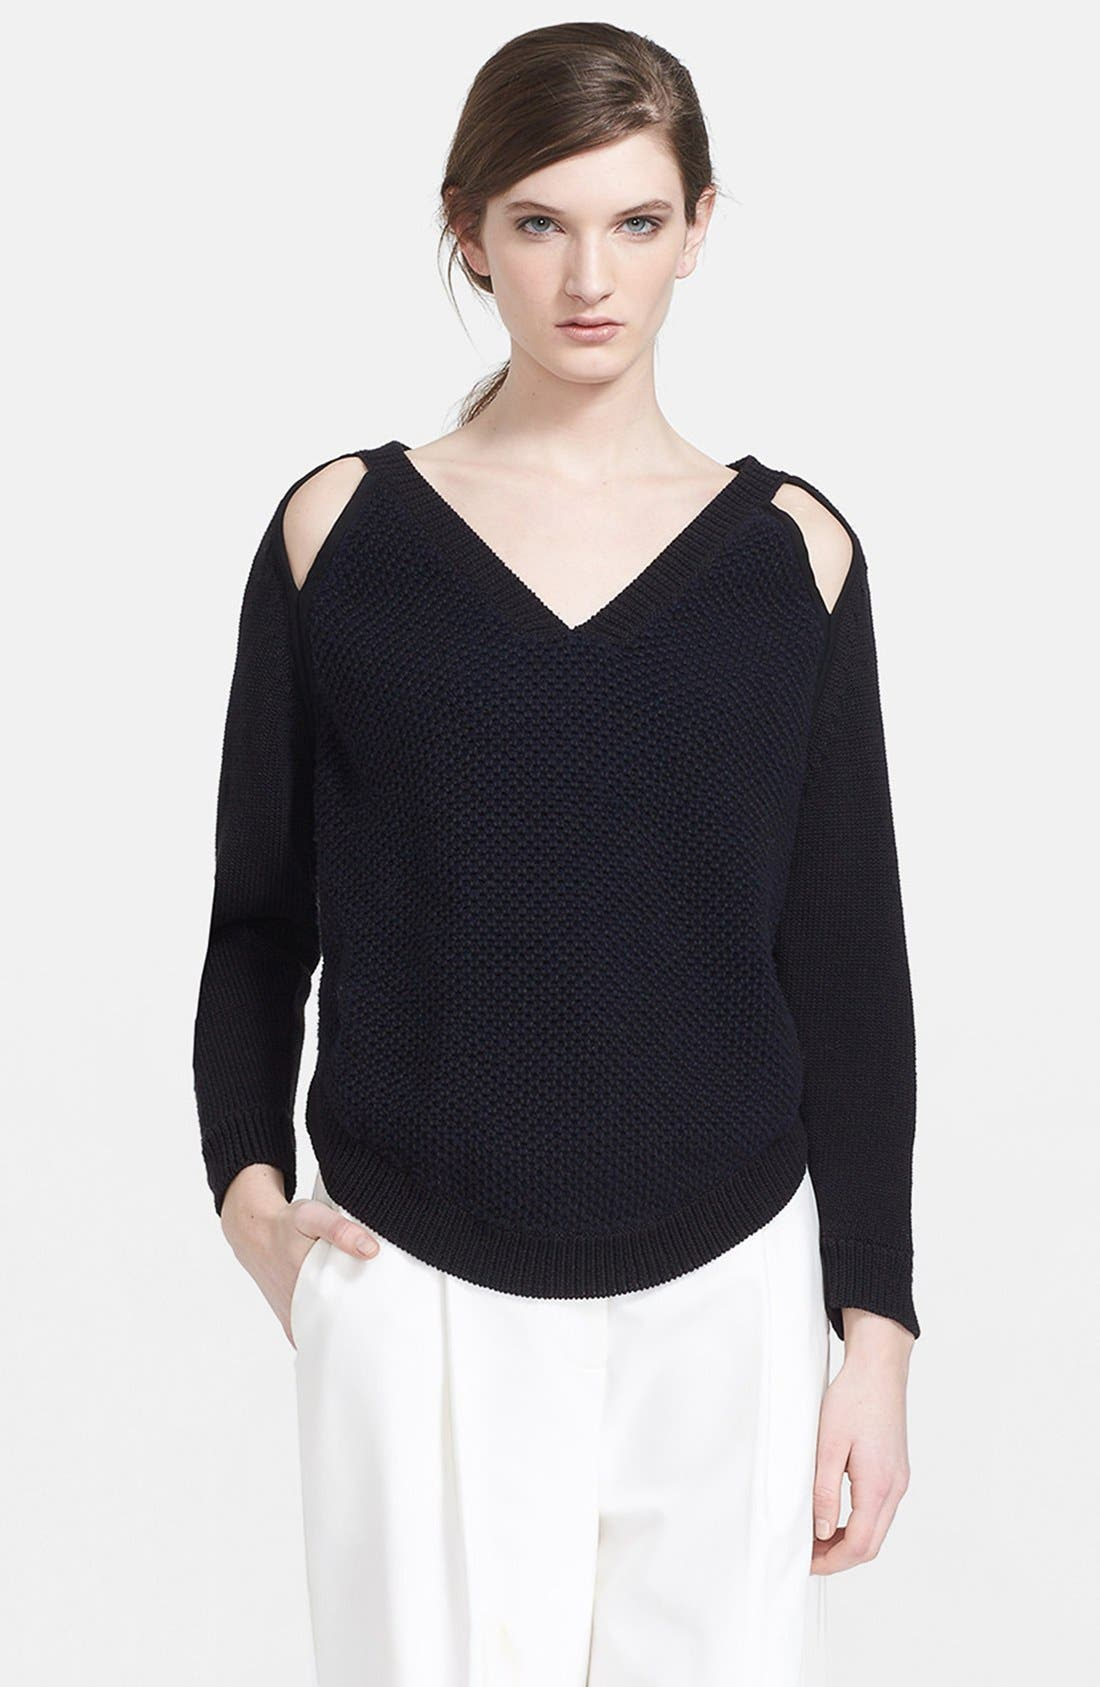 Main Image - 3.1 Phillip Lim Two-Tone Slit Shoulder V-Neck Pullover